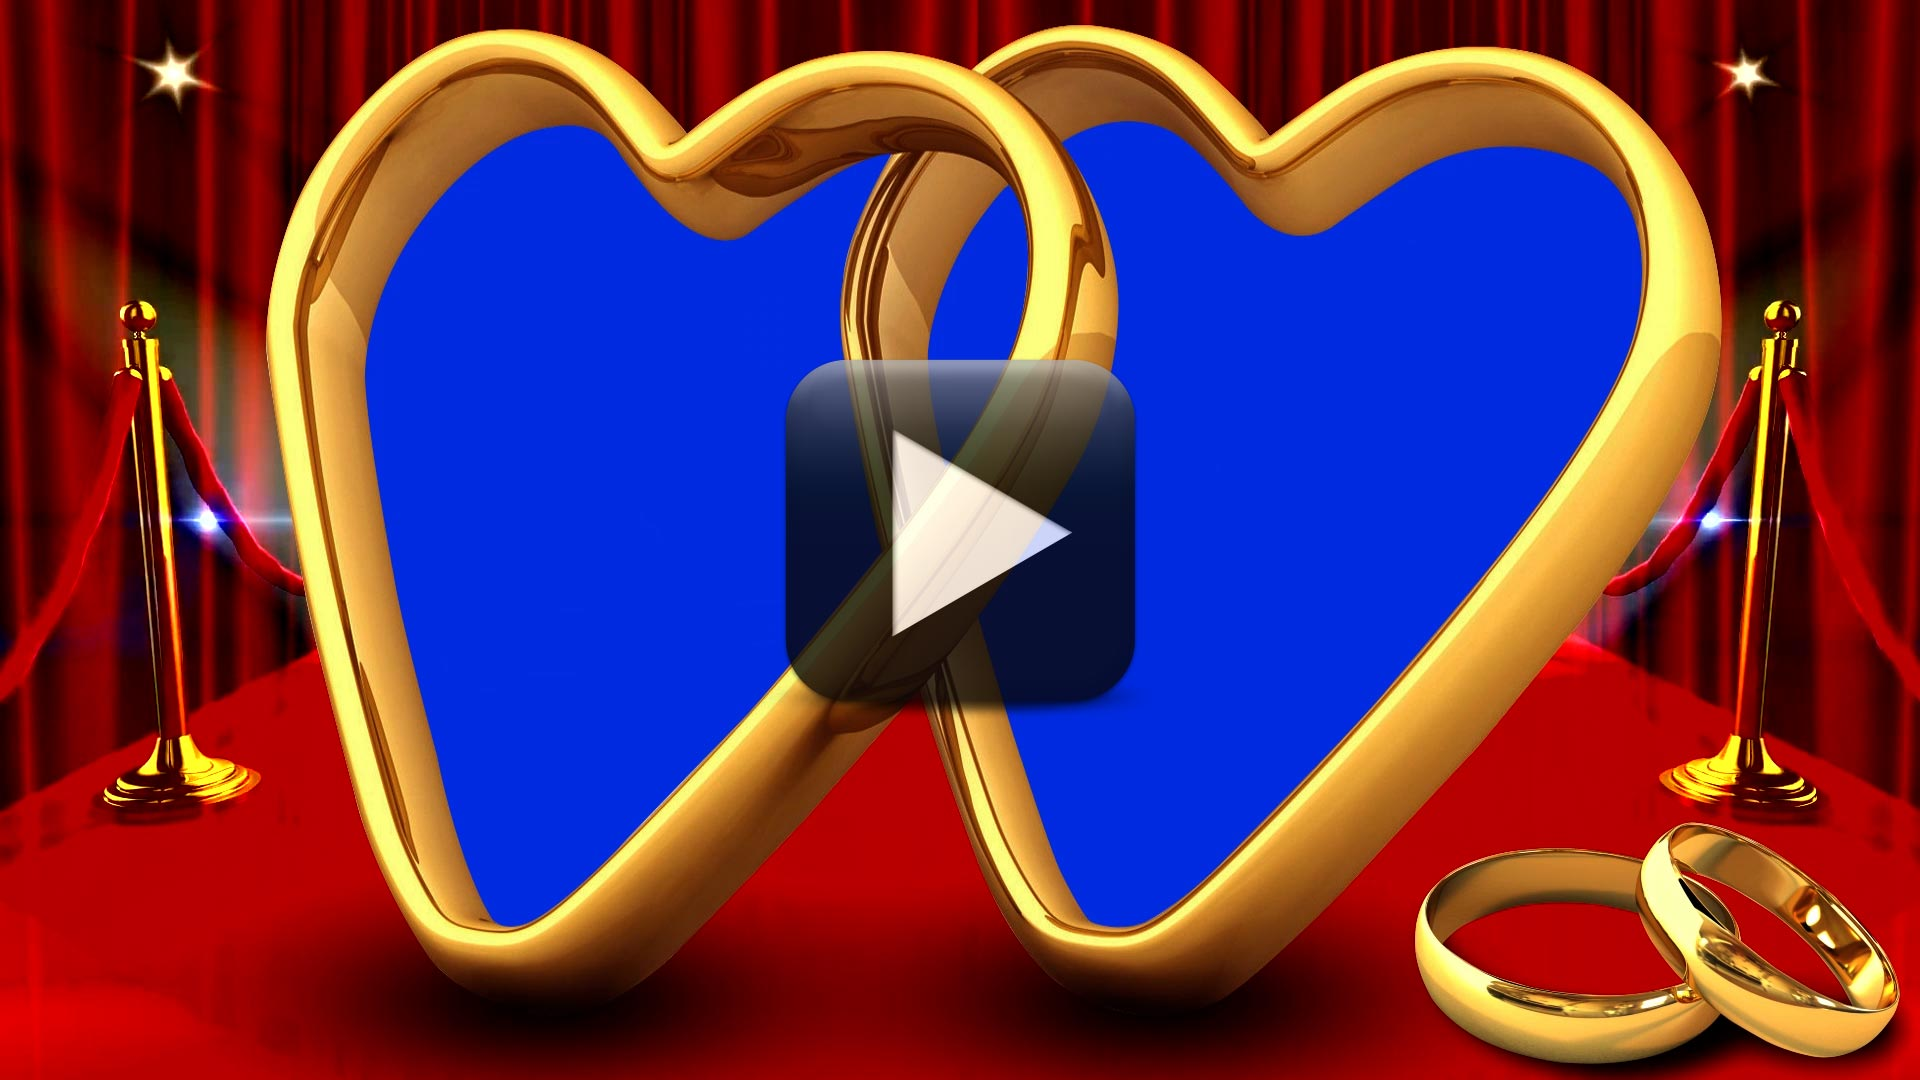 Free Love Wedding Motion Background Full Hd 1080p All Design Creative